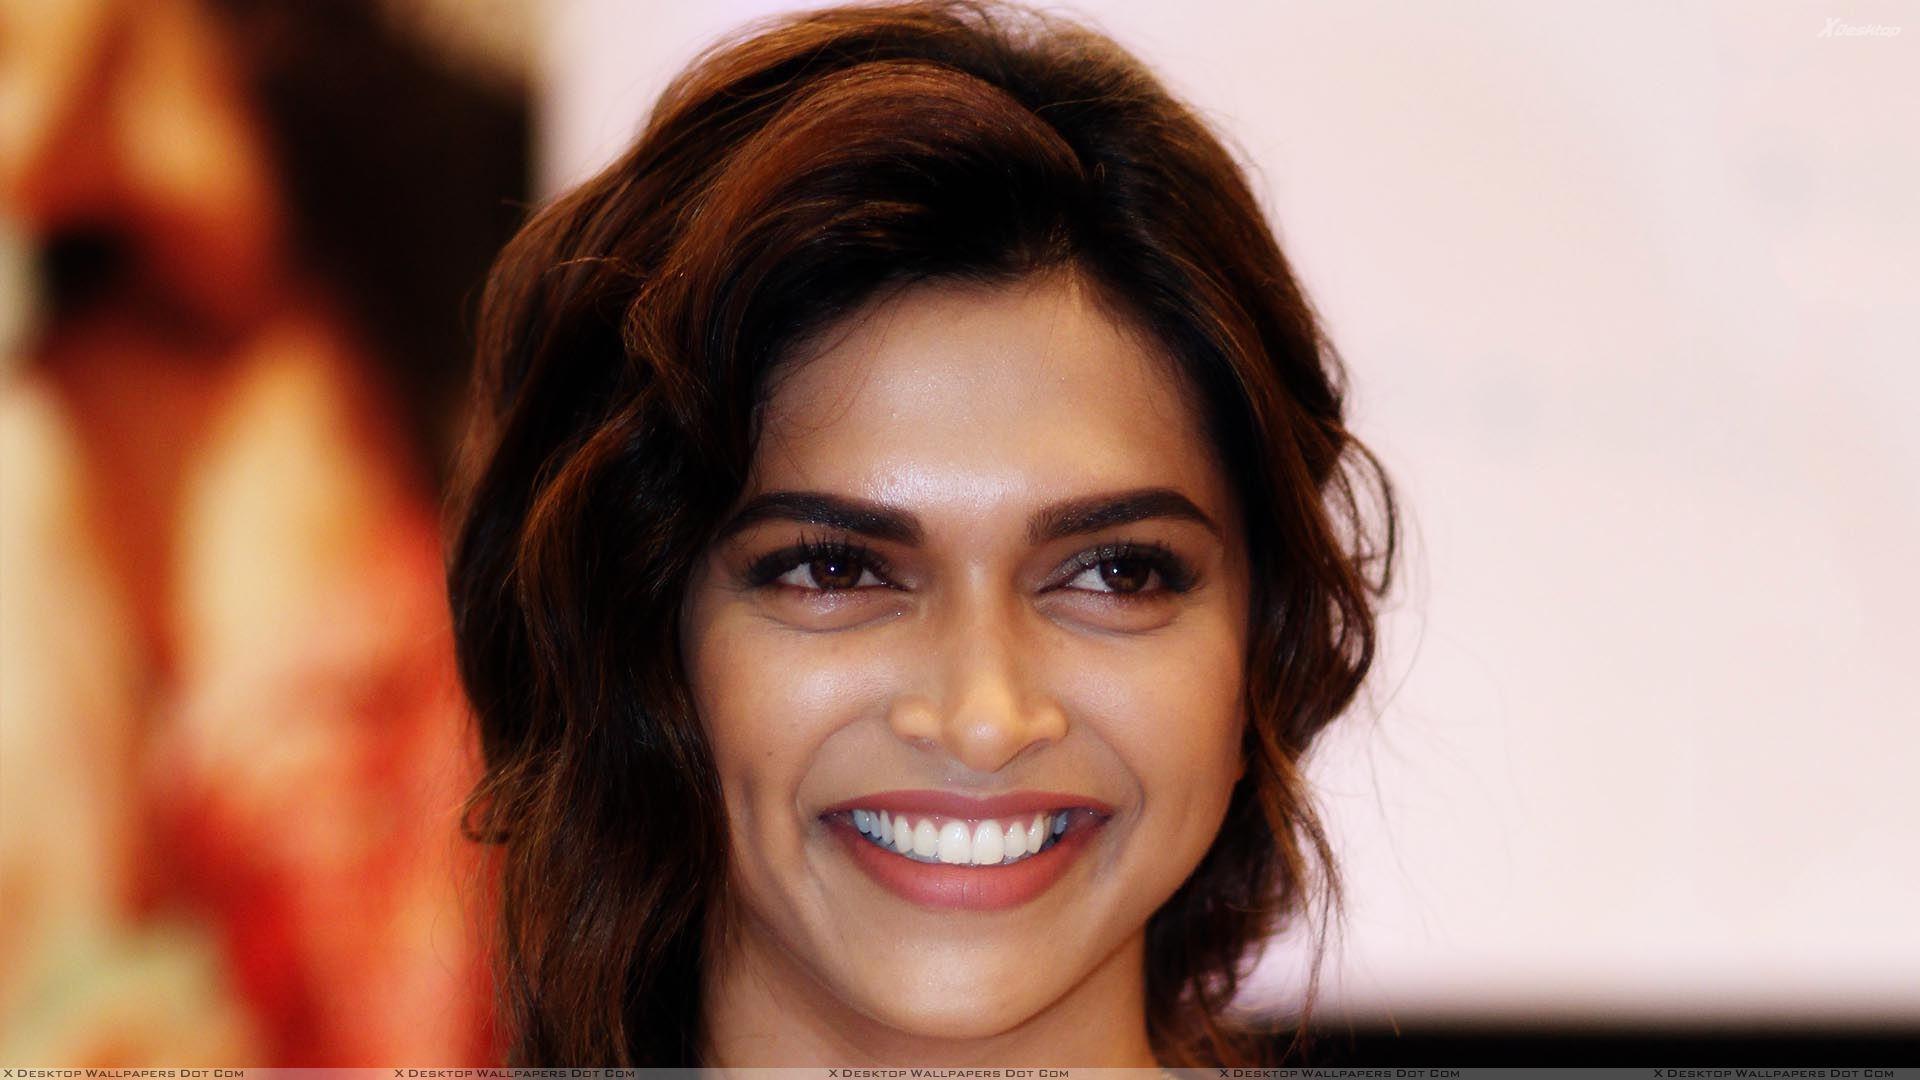 Deepika Padukone Wallpapers Photos Images In Hd